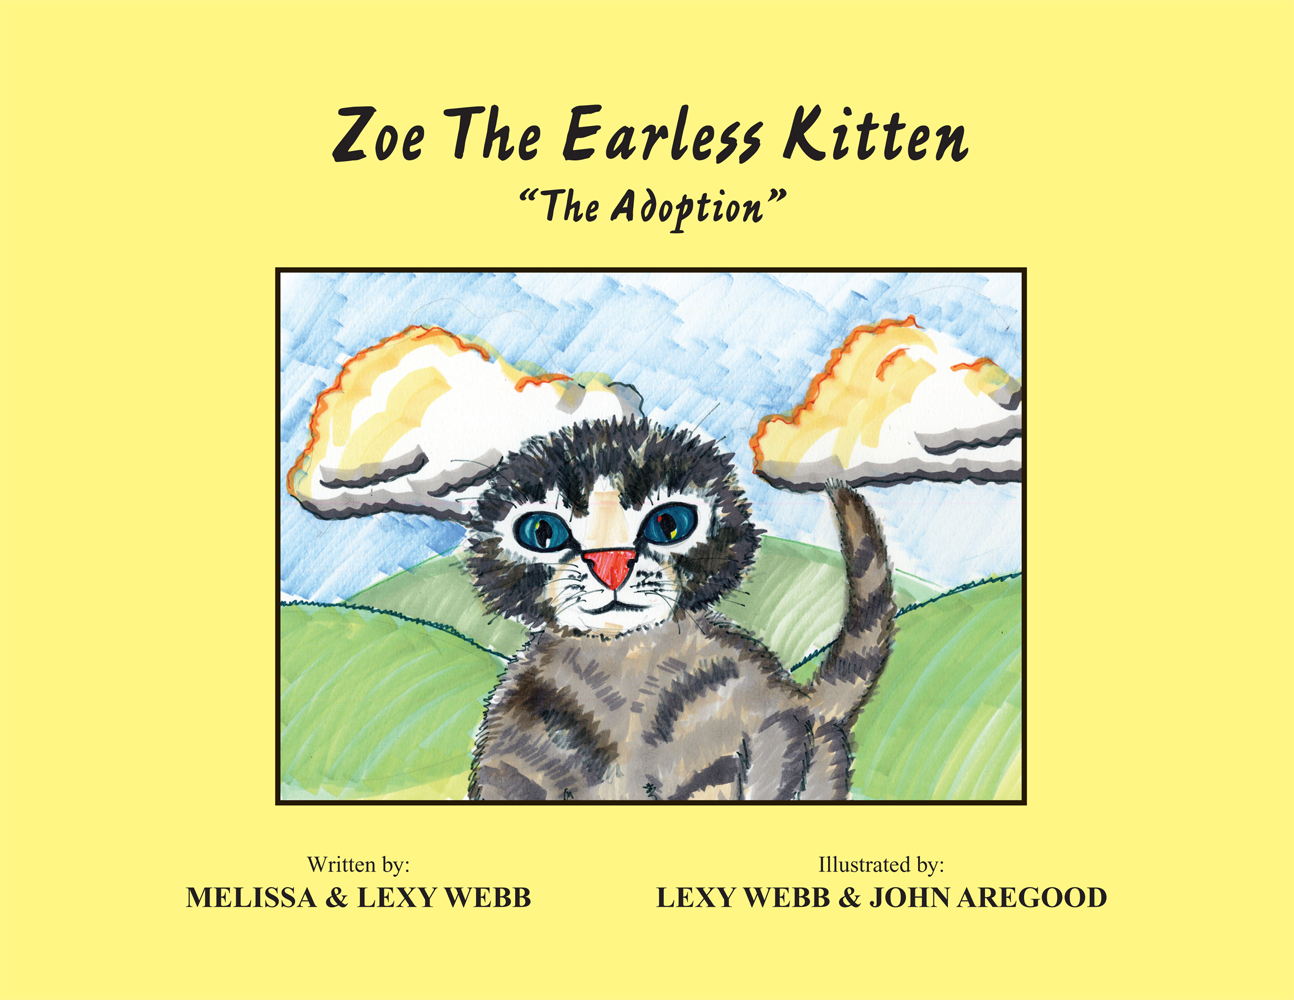 Zoe The Earless Kitten ''The Adoption''